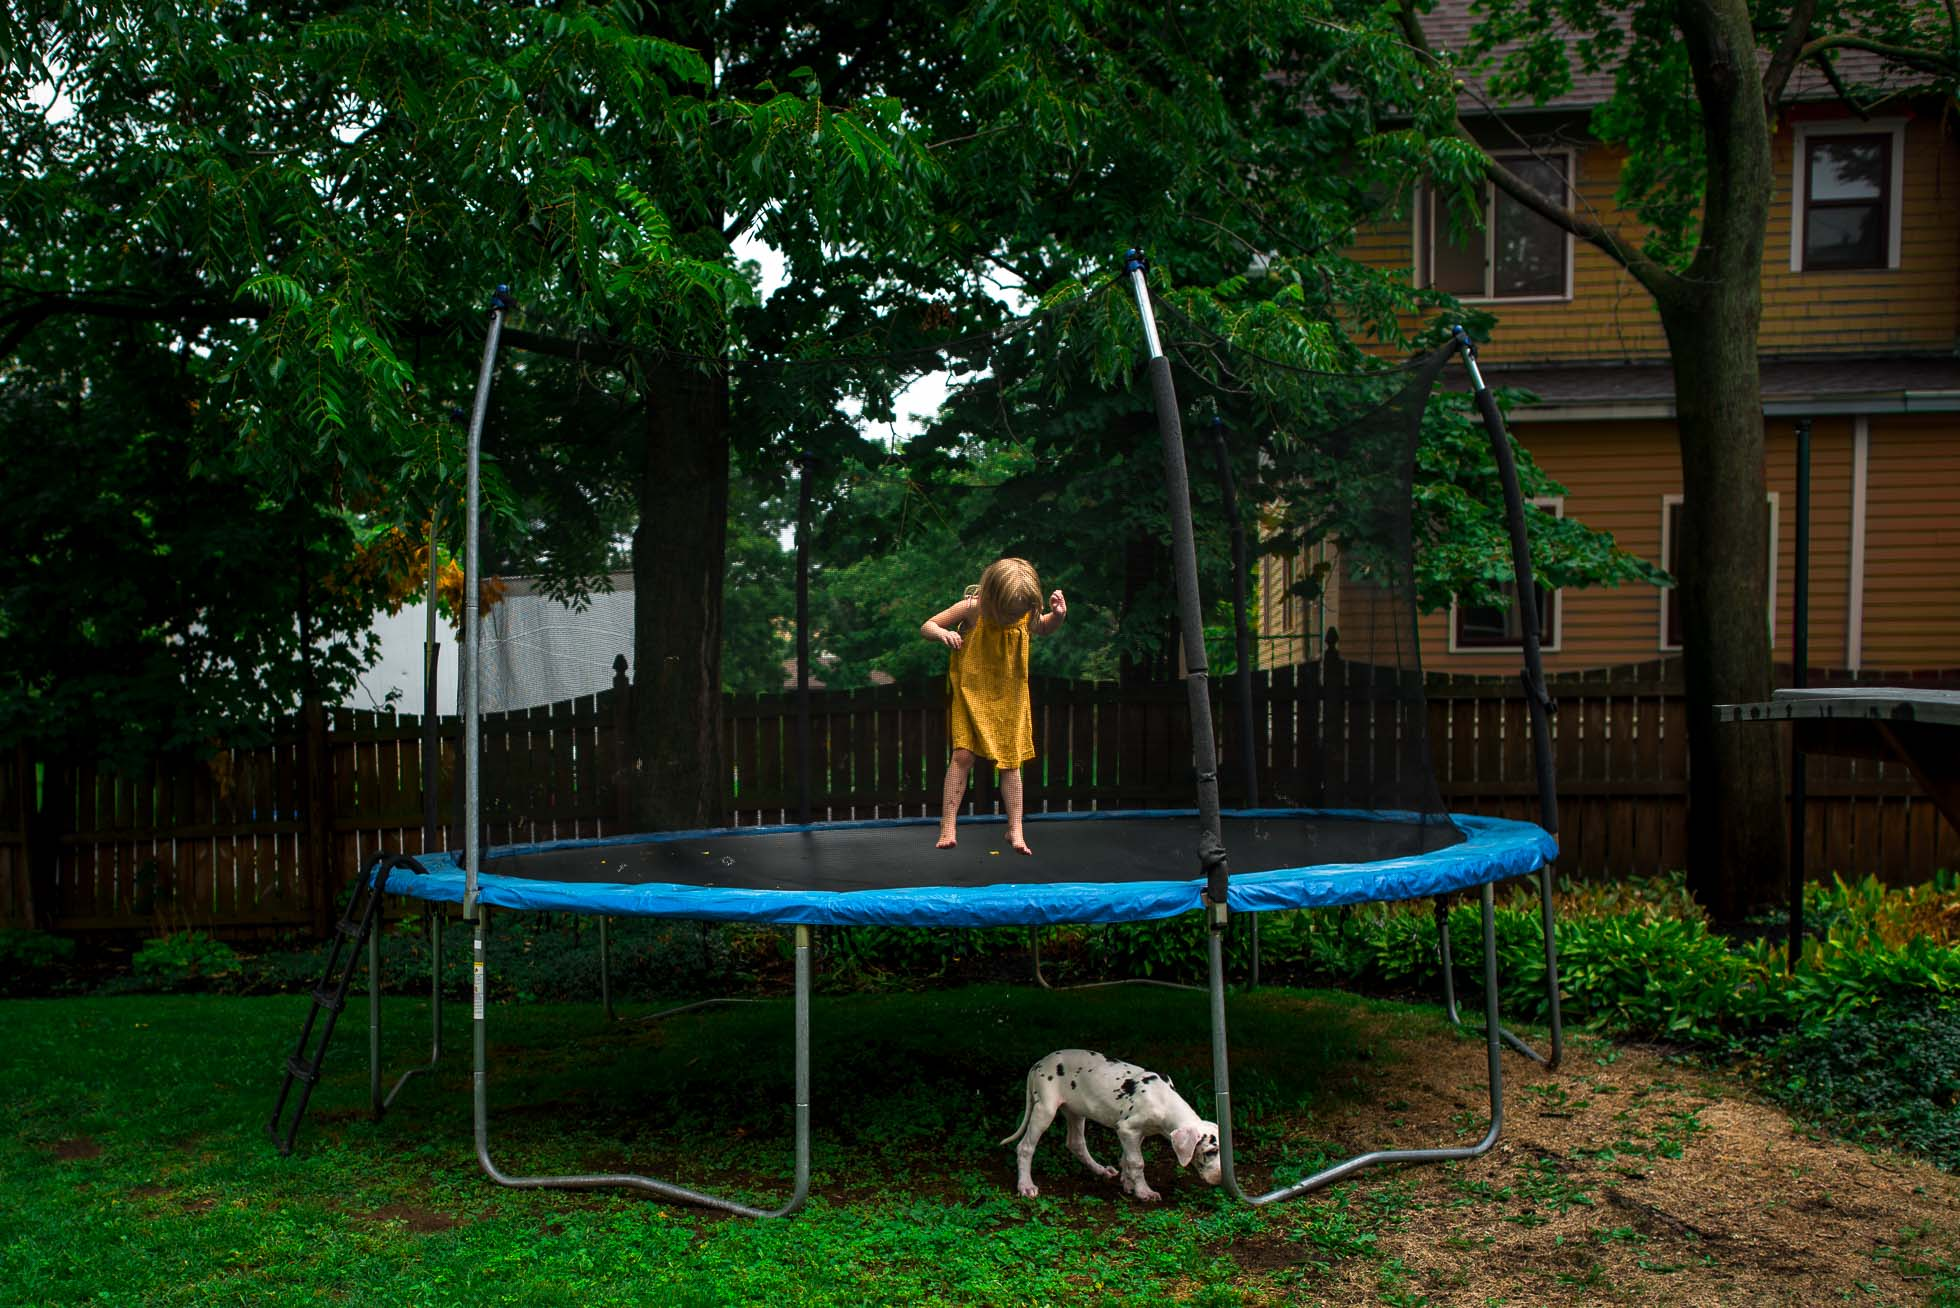 Girl-in-Yellow-Dress-Jumping-on-Trampoline-and-Harlequin-Great-Dane-Puppy-Walking-Underneath-by-Sarah-Wilkerson-